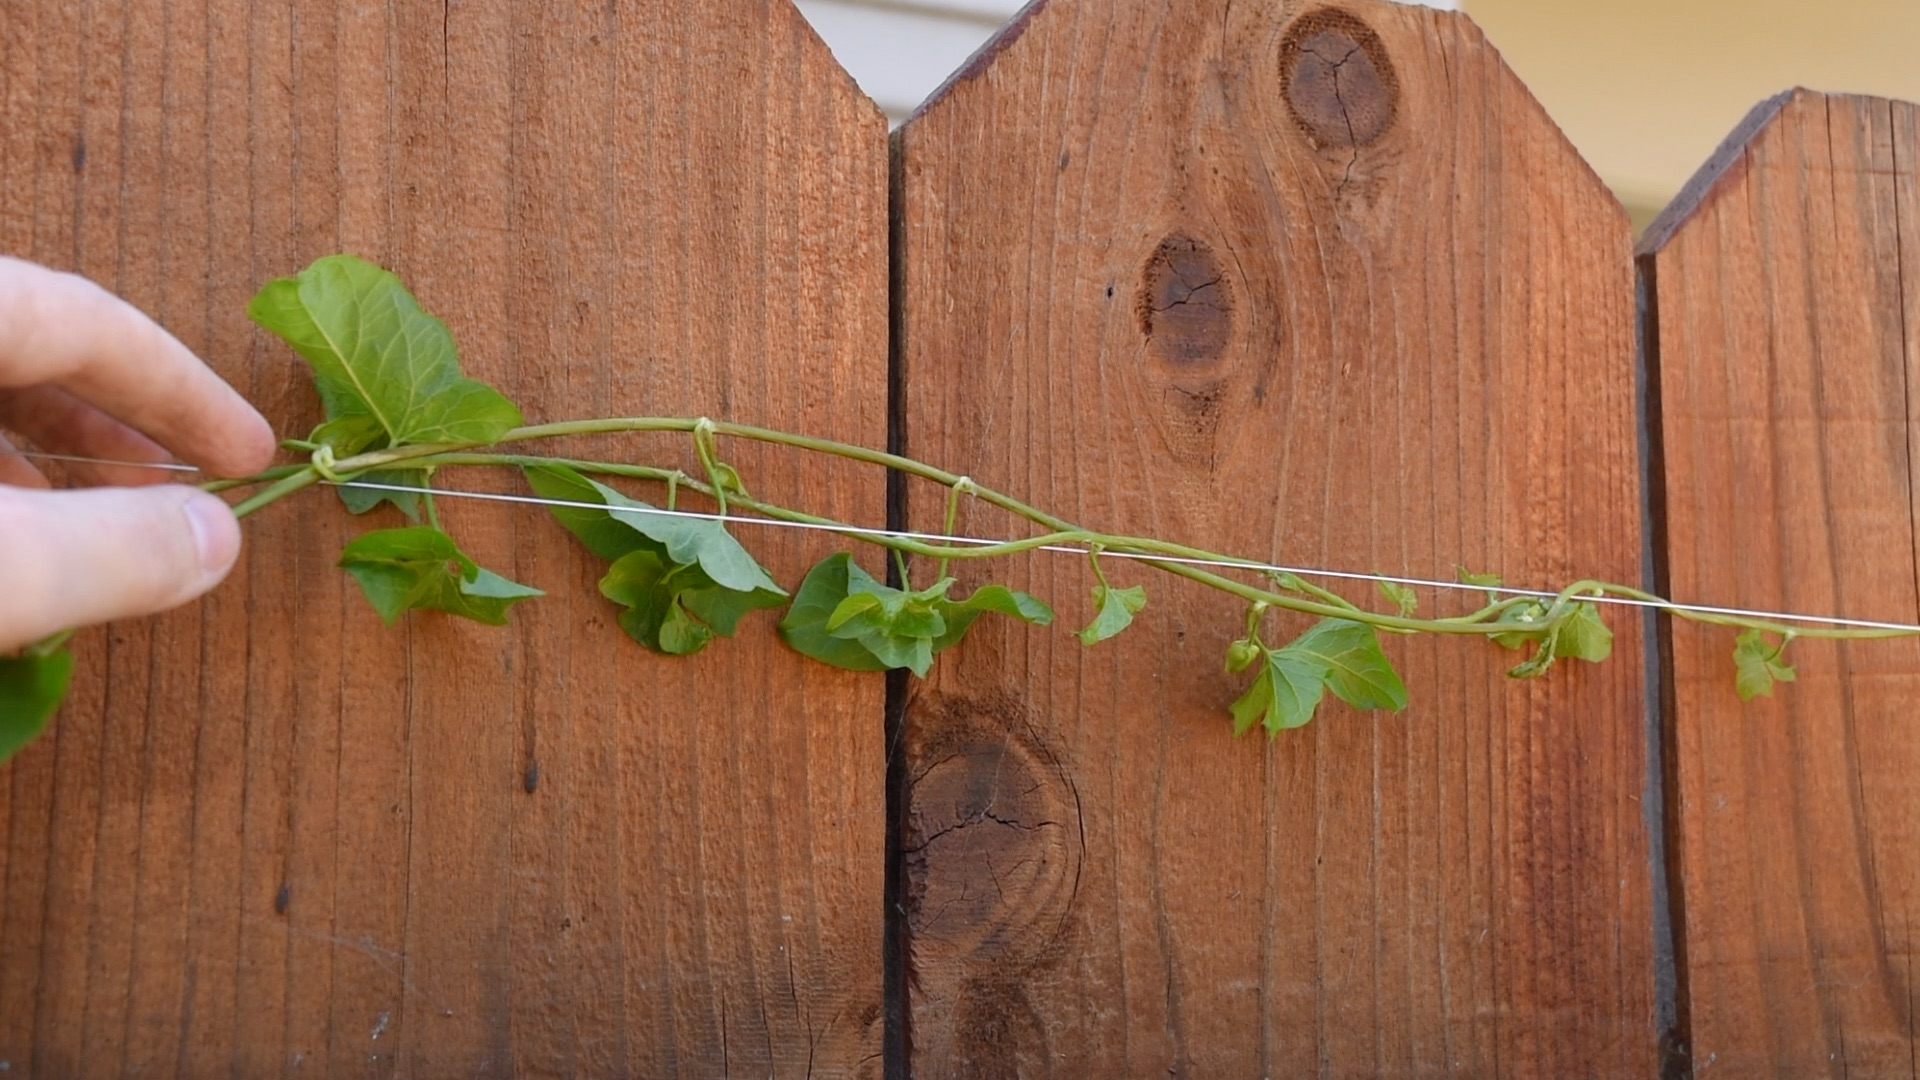 How to train vines to climb a fence and how to refresh a fence - The Gold Hive